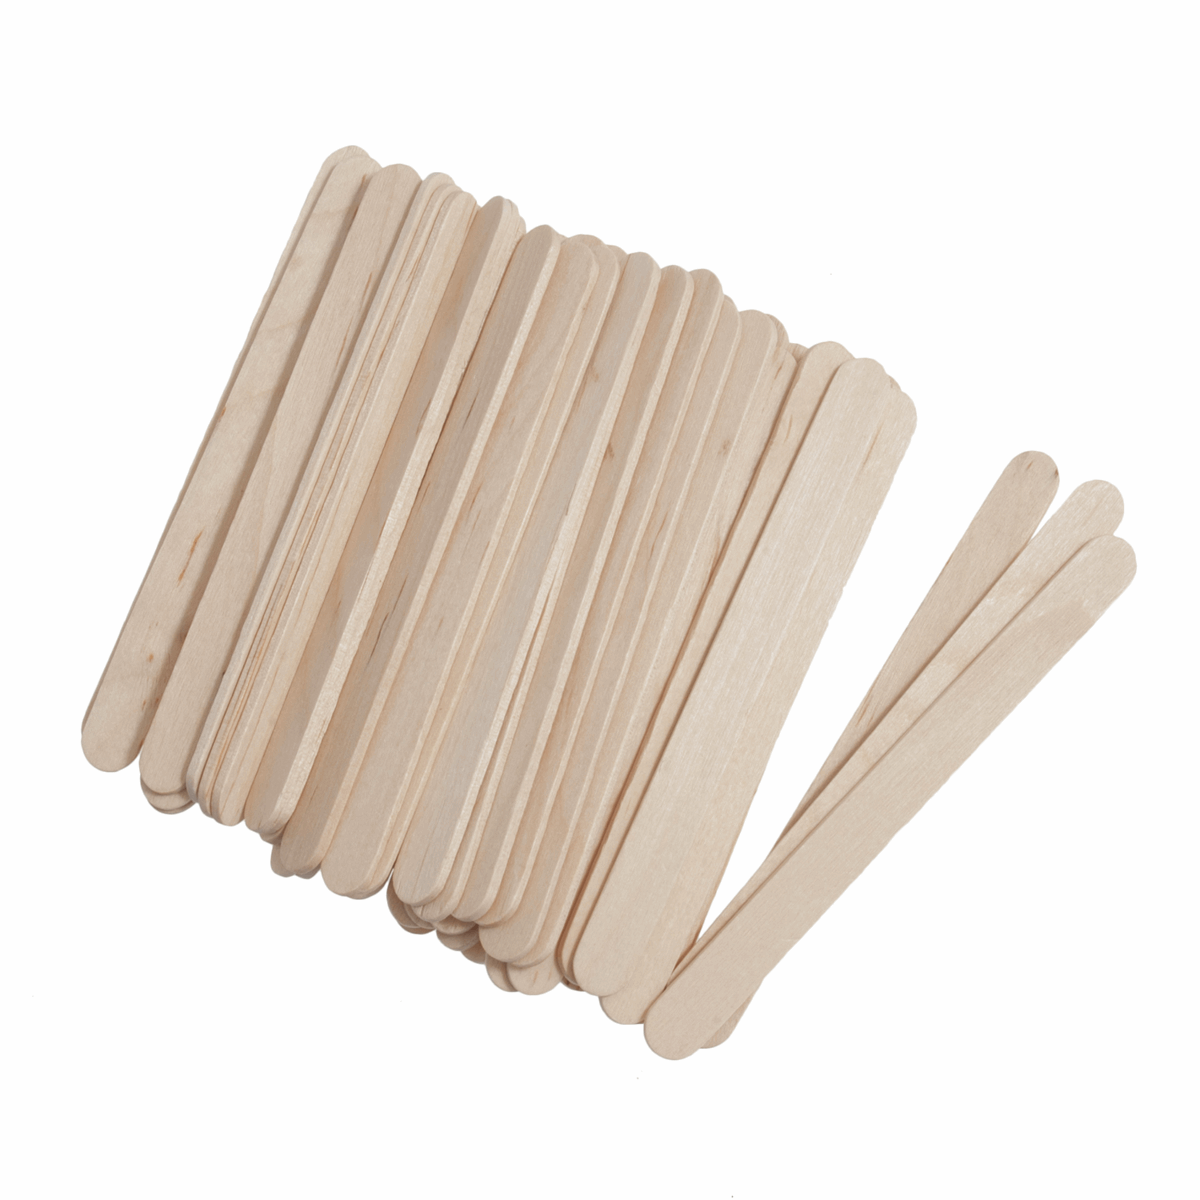 Picture of Lollypop Sticks: Wooden: 113 x 10mm: Pack of 100: Natural